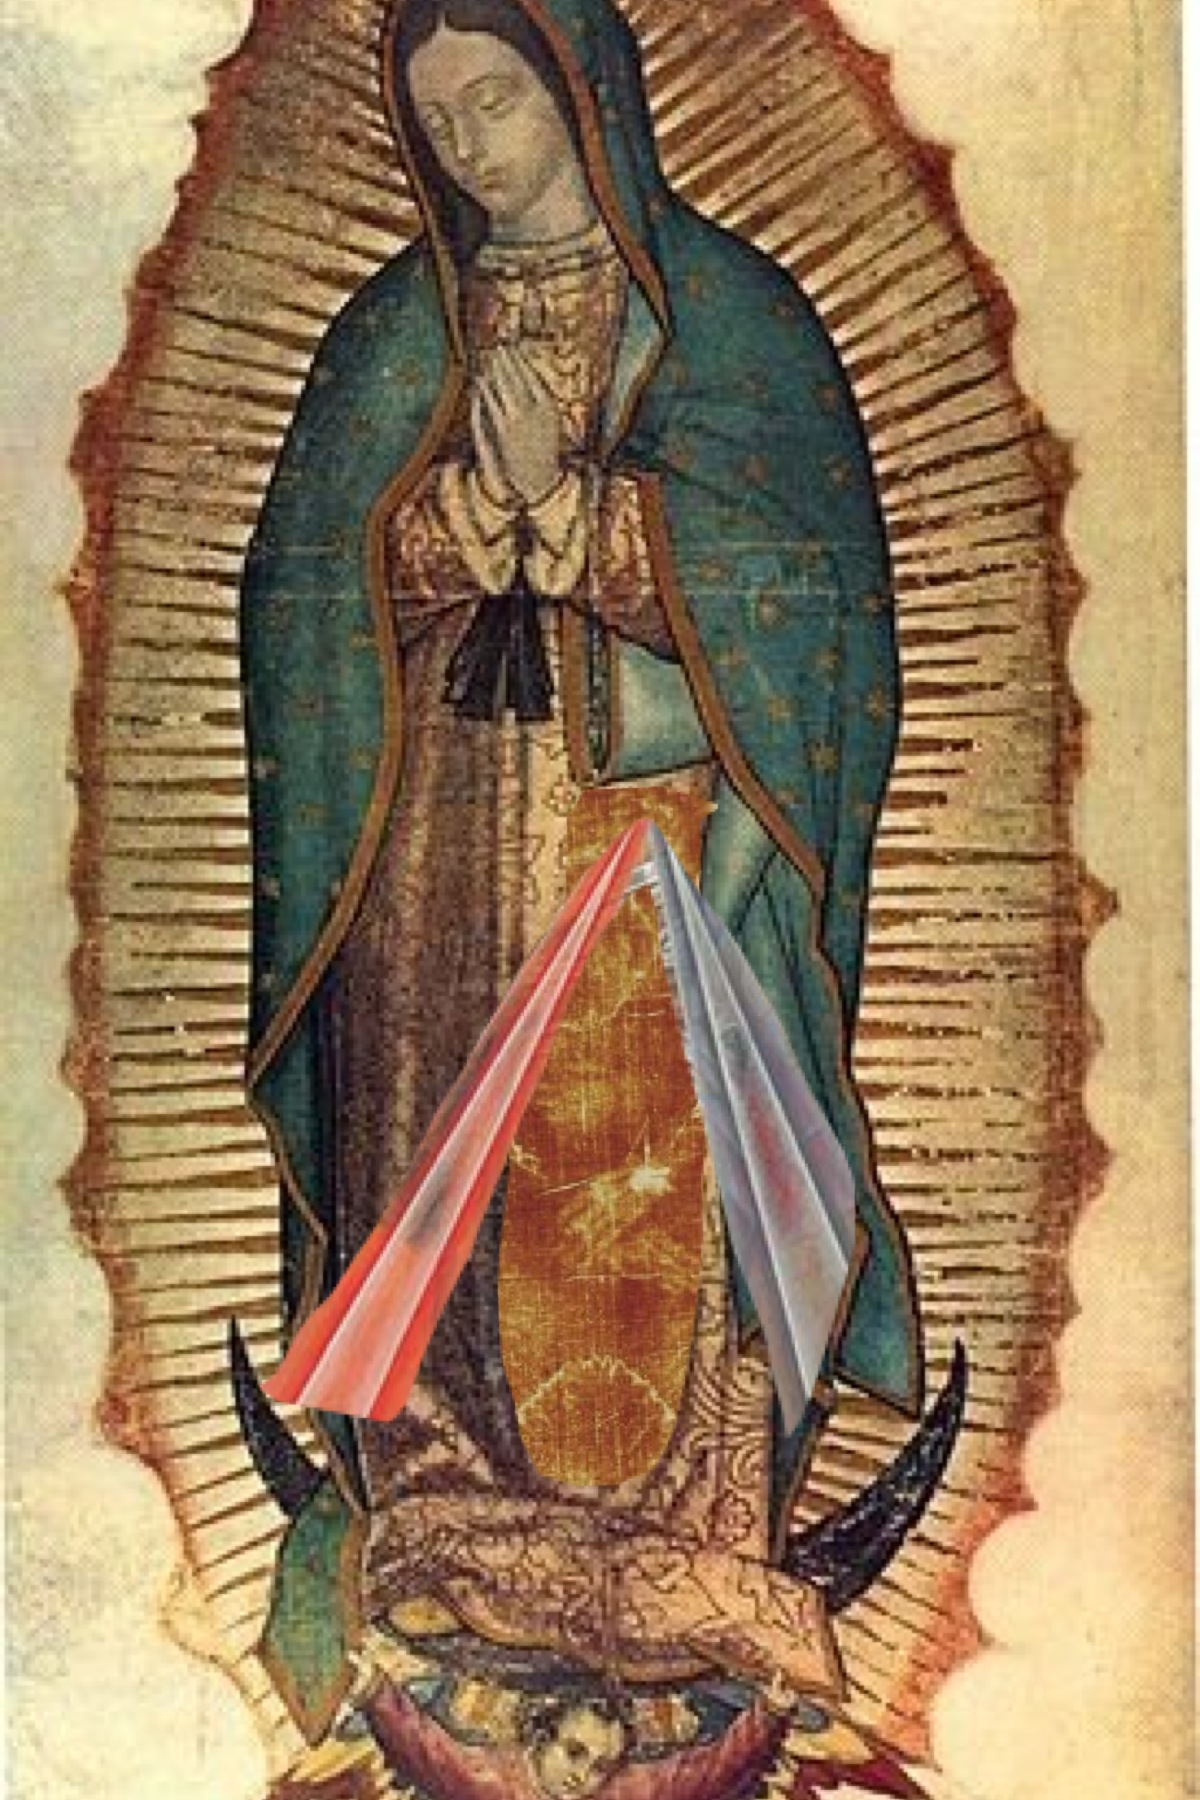 our lady of guadalupe embracing your greatness